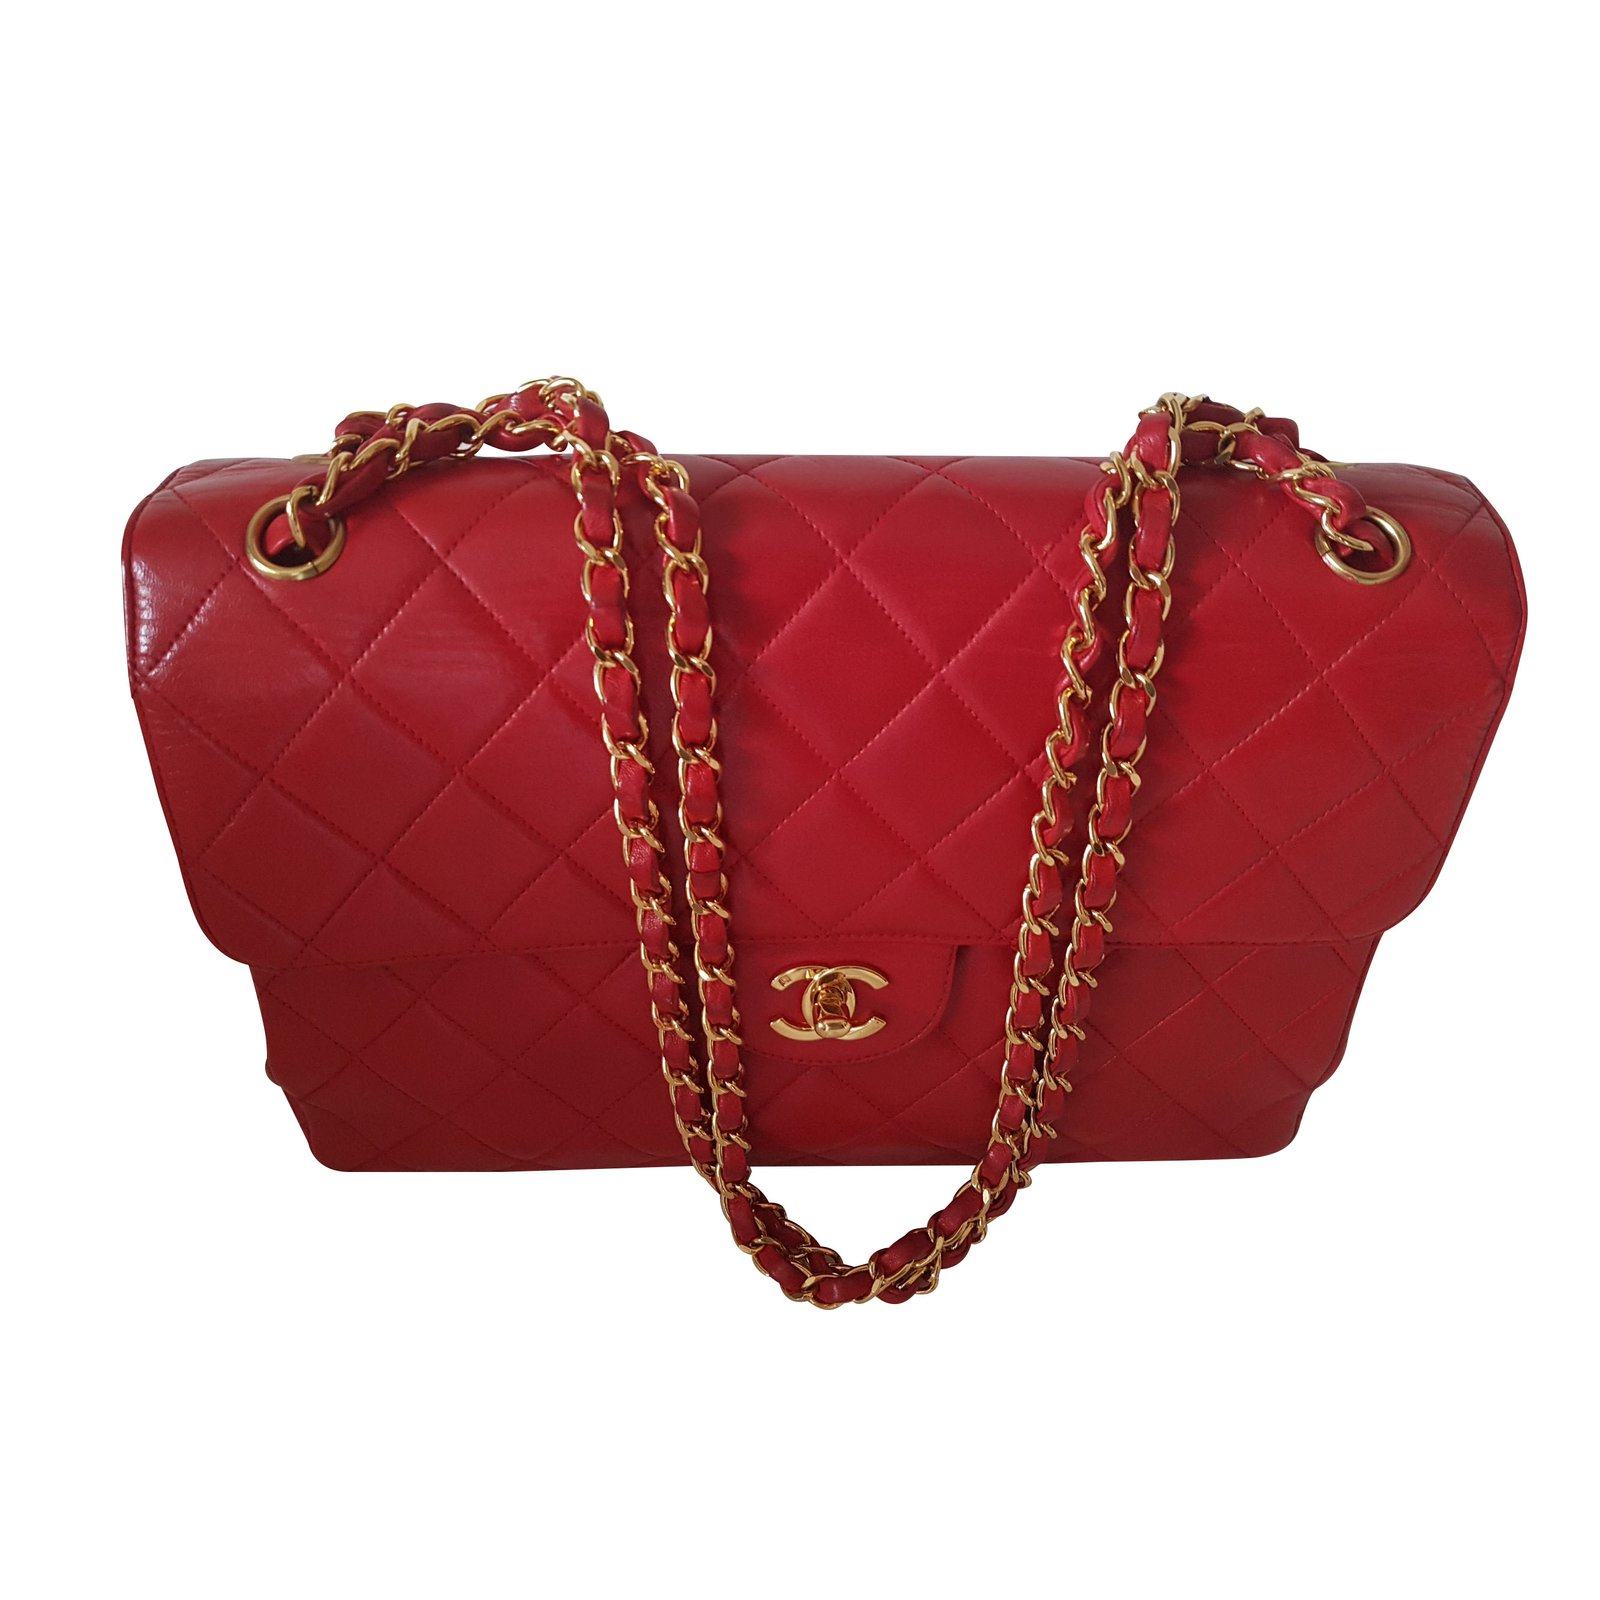 d5888f8a3bae Red Chanel Bag